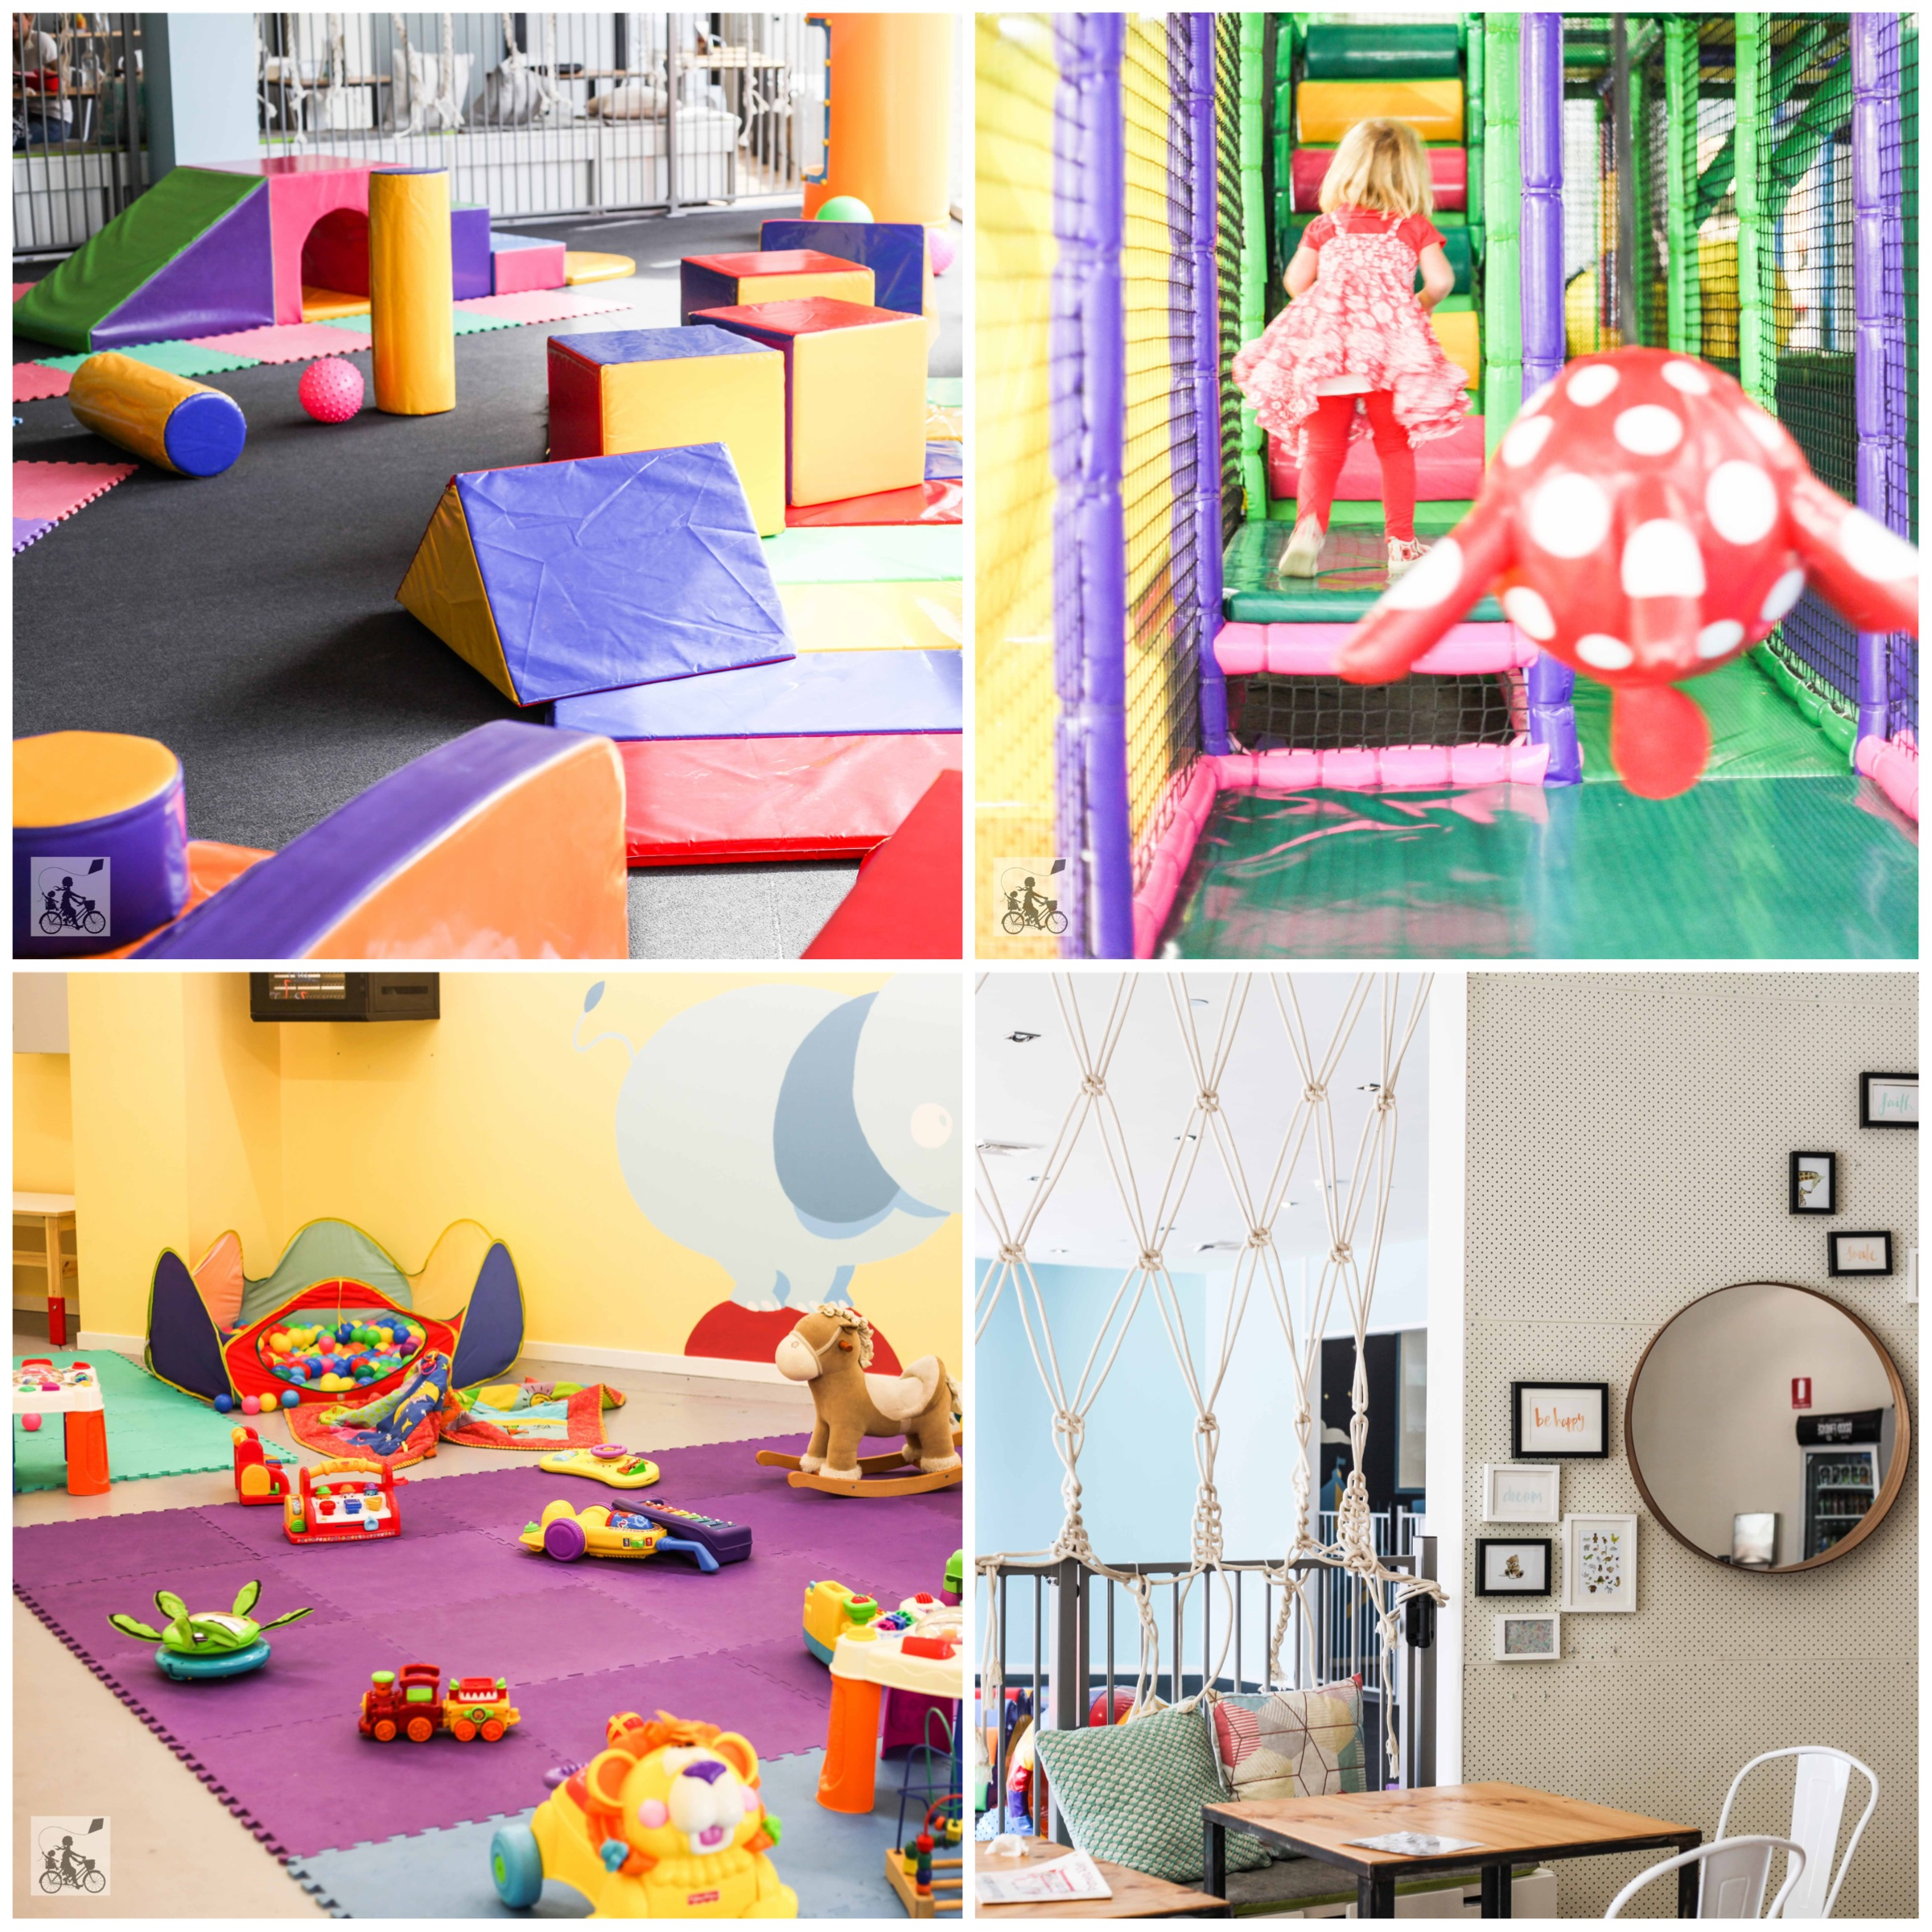 Mamma Knows South - Planet Kids indoor play Southbank